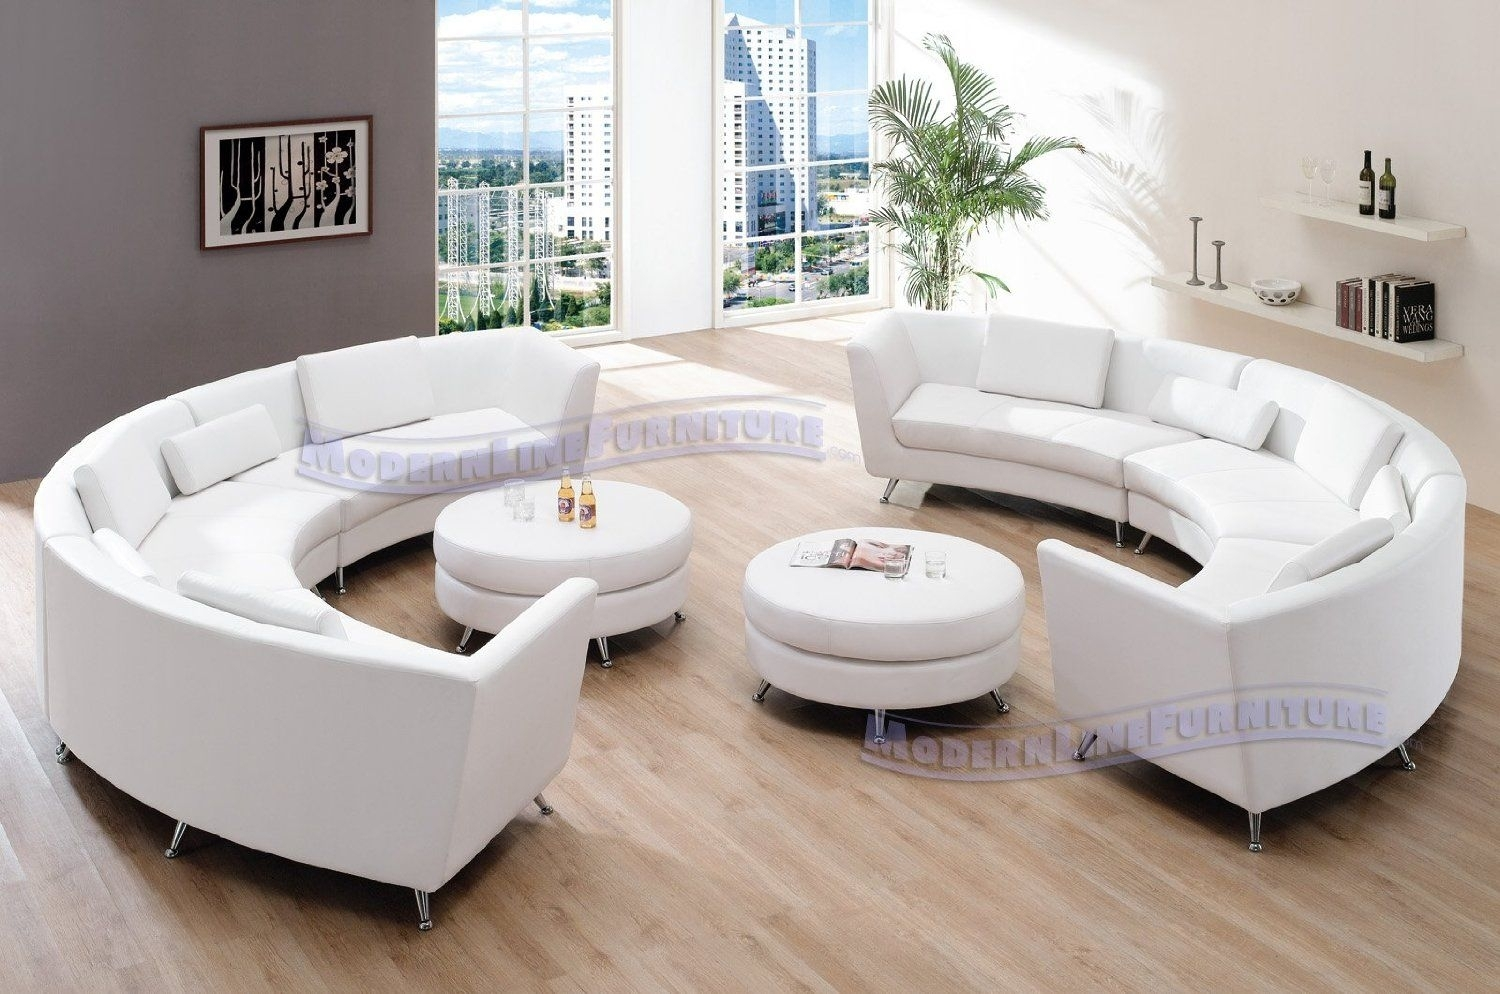 Amazon: Exclusive Modern Furniture Vip Sectional With Two White Throughout Sectional Sofas At Amazon (Image 3 of 10)